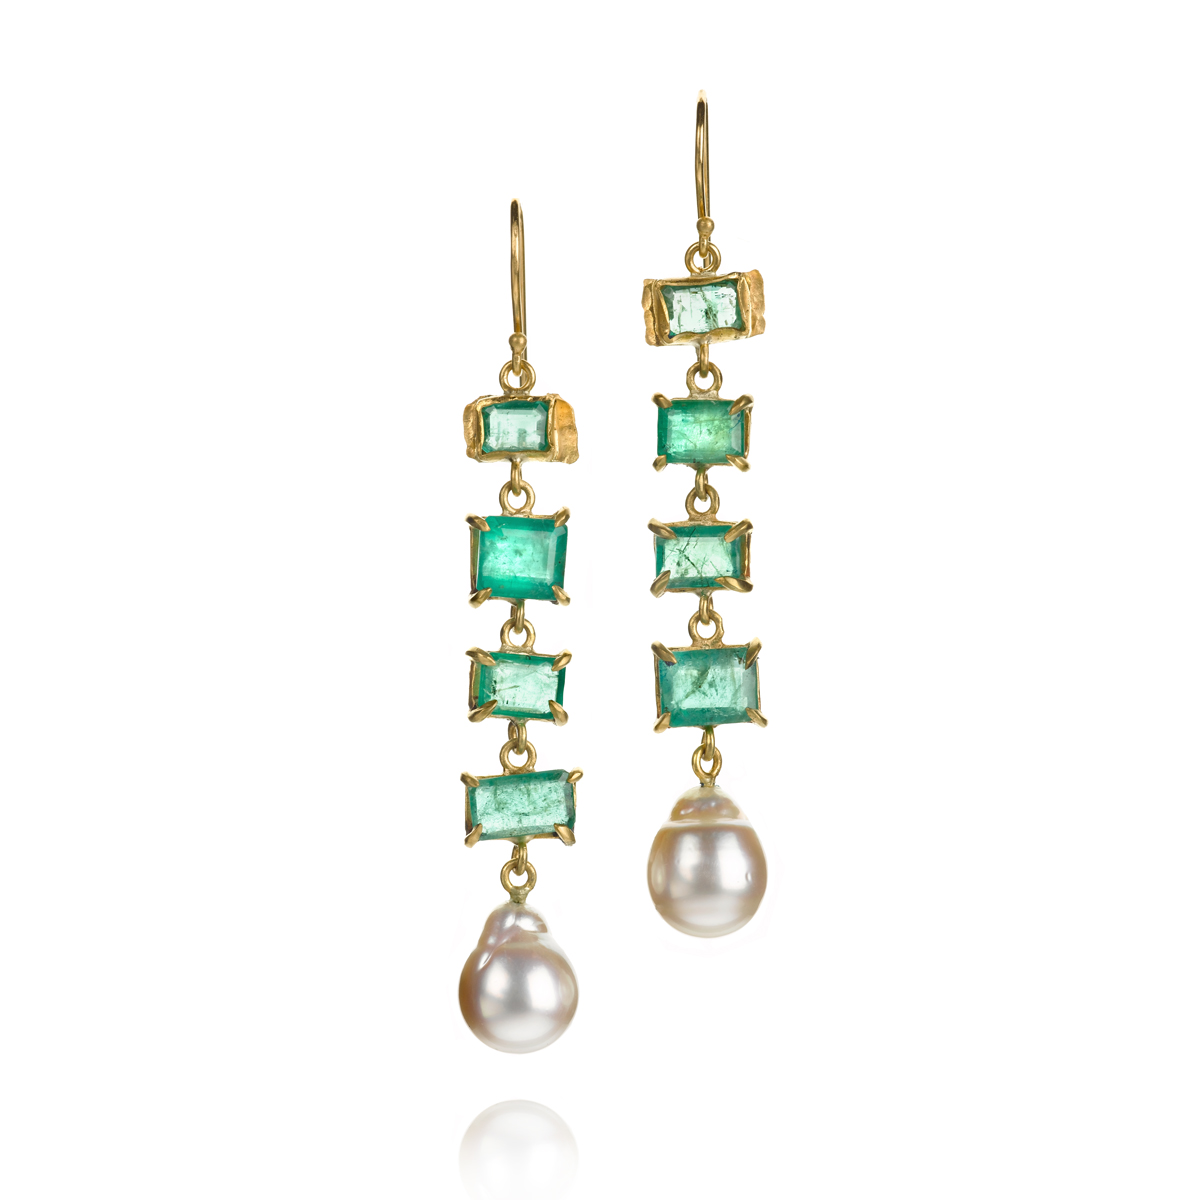 Emeralds all day yes please.22K earrings with 9.08 cts emerald and baroque freshwater pearl, $6,655.